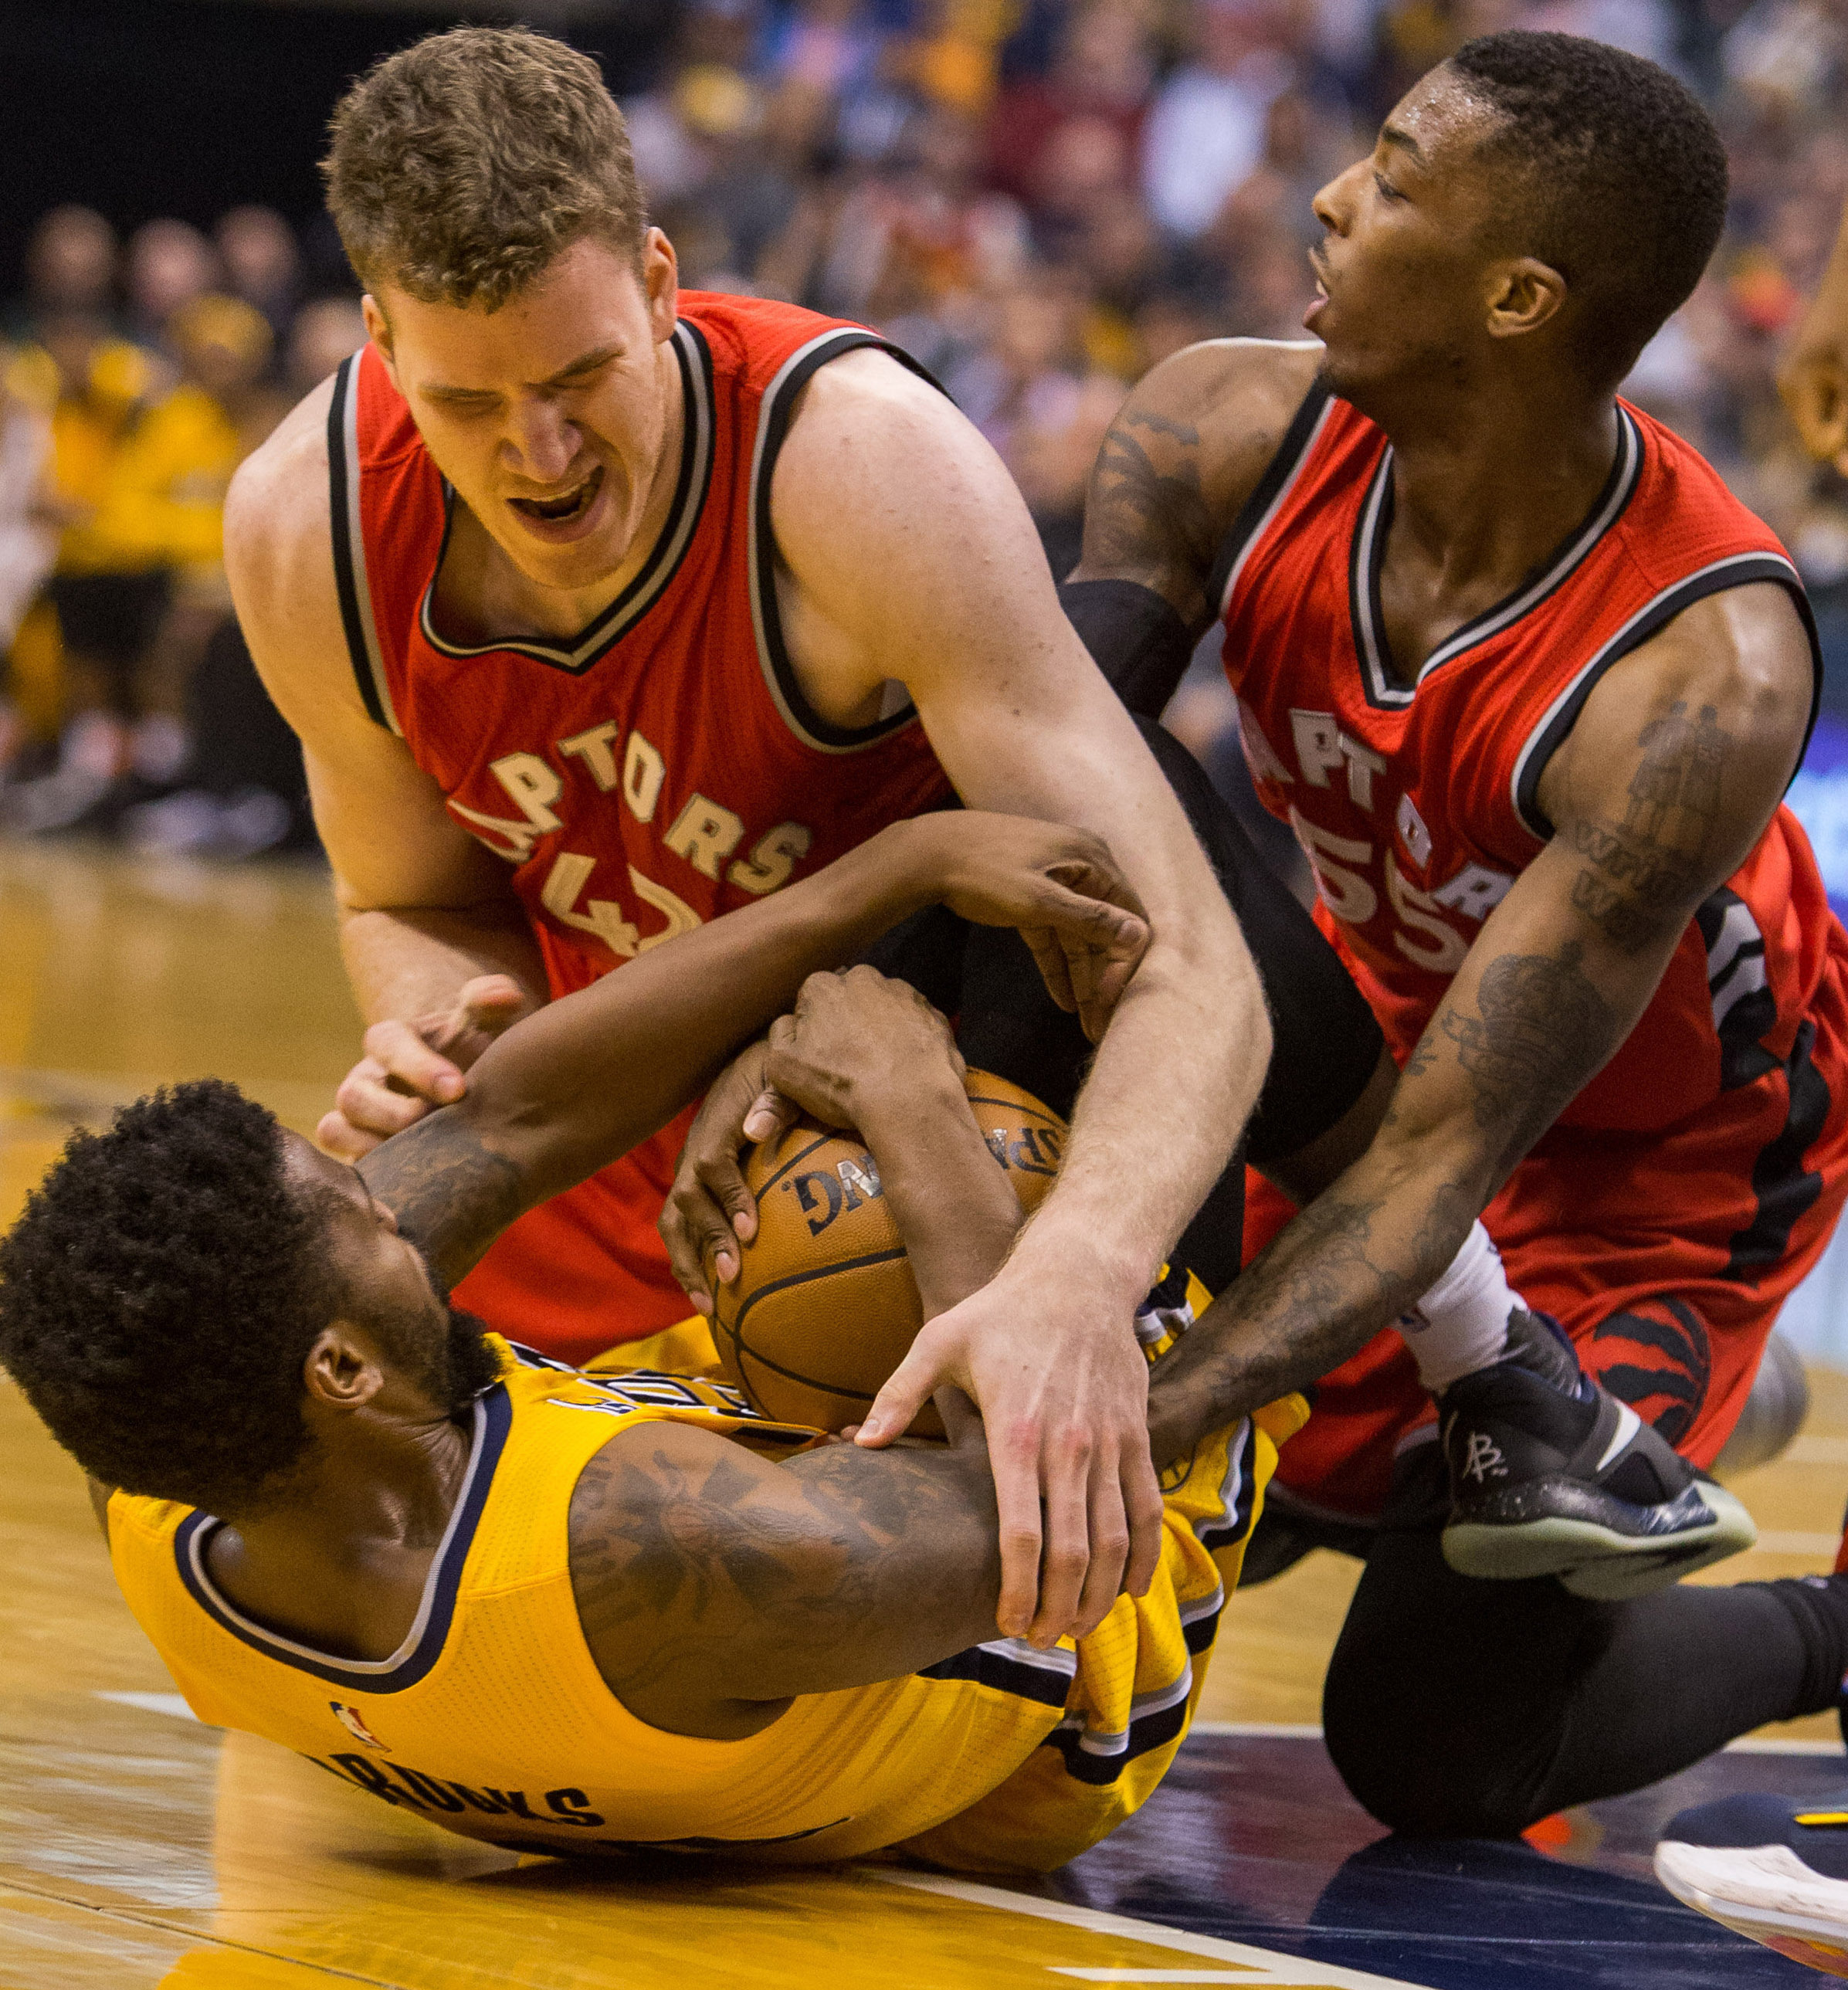 9993087-nba-toronto-raptors-at-indiana-pacers